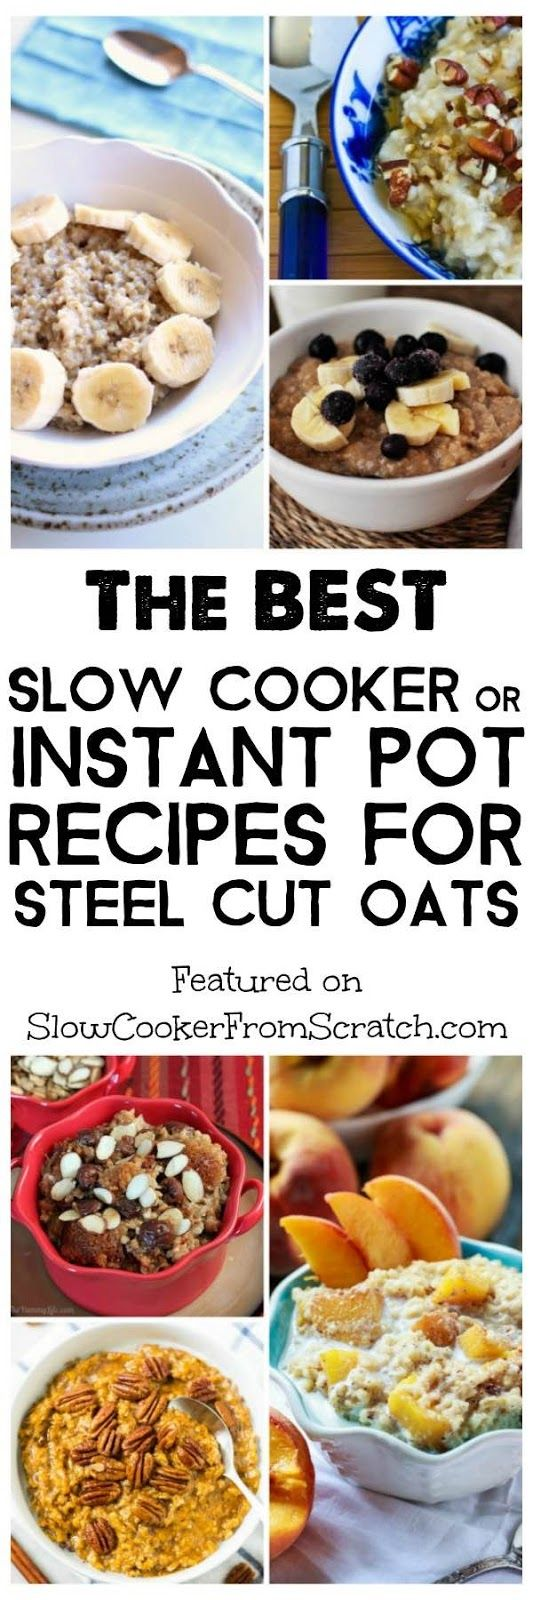 6131 best images about crockpot obsessed on pinterest for Slow cooker breakfast recipes for two